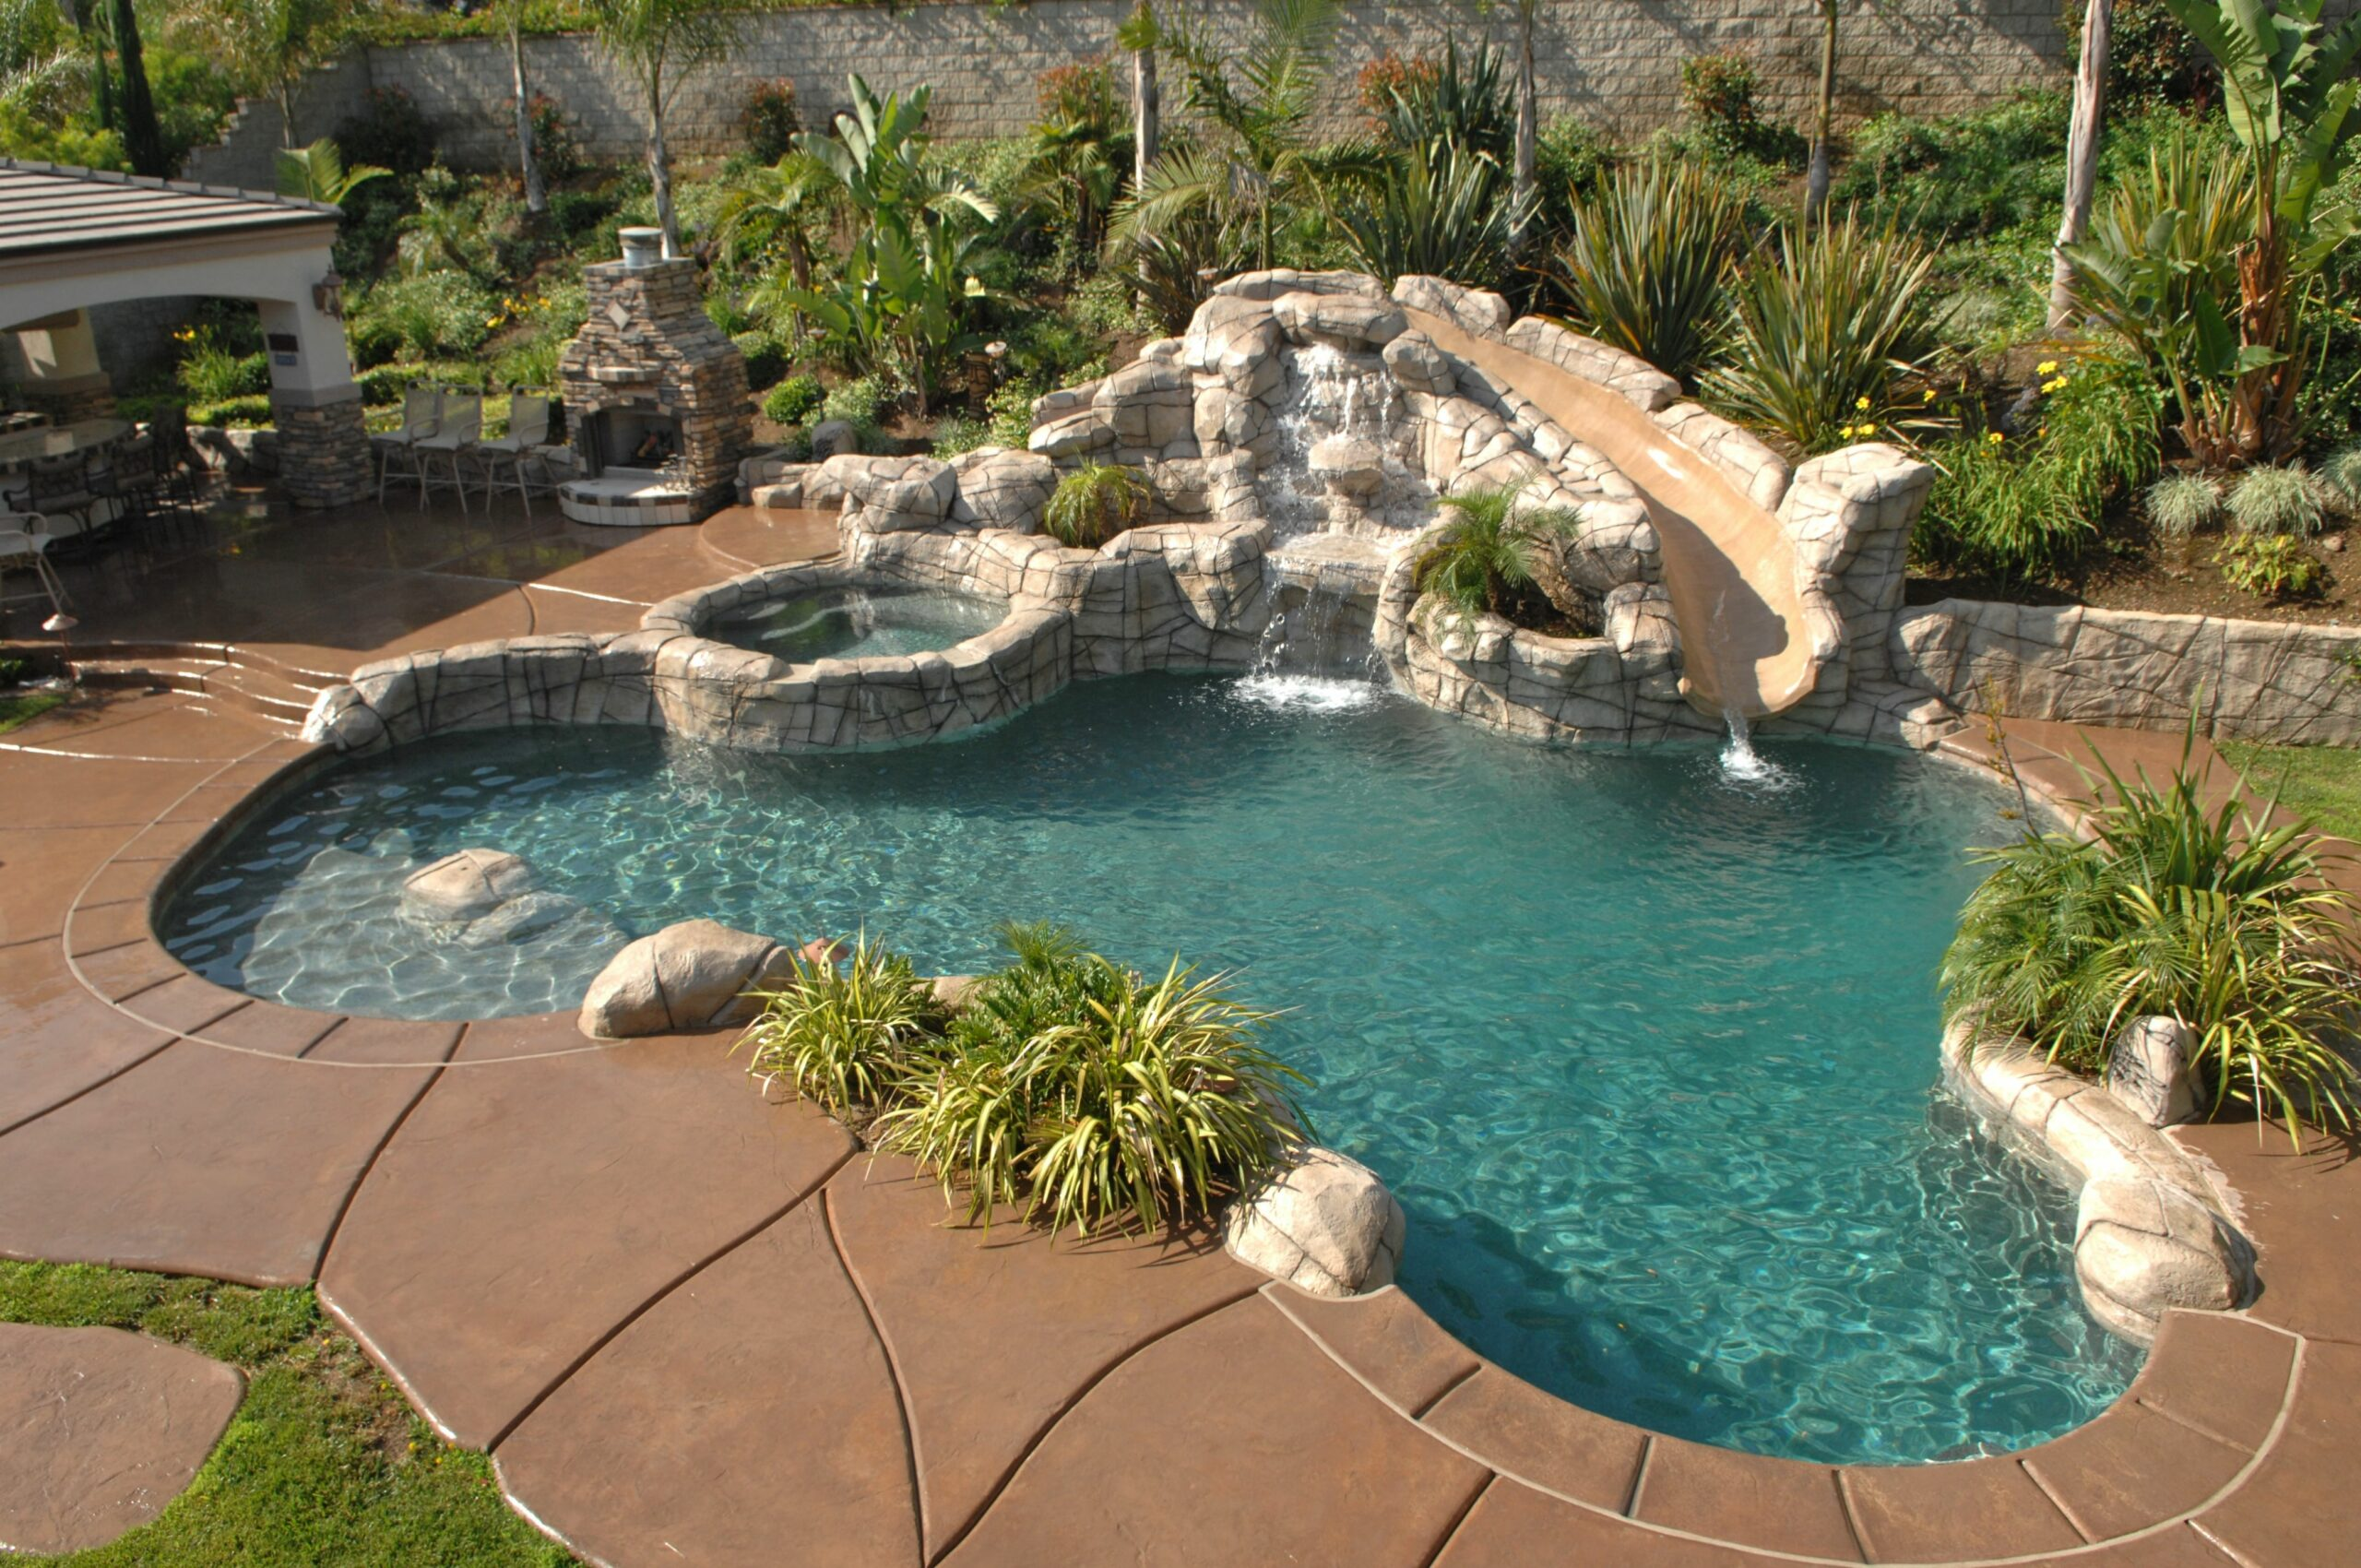 Pool Designs With Rock Slides Gorgeous Swimming Pools Natural Home ...